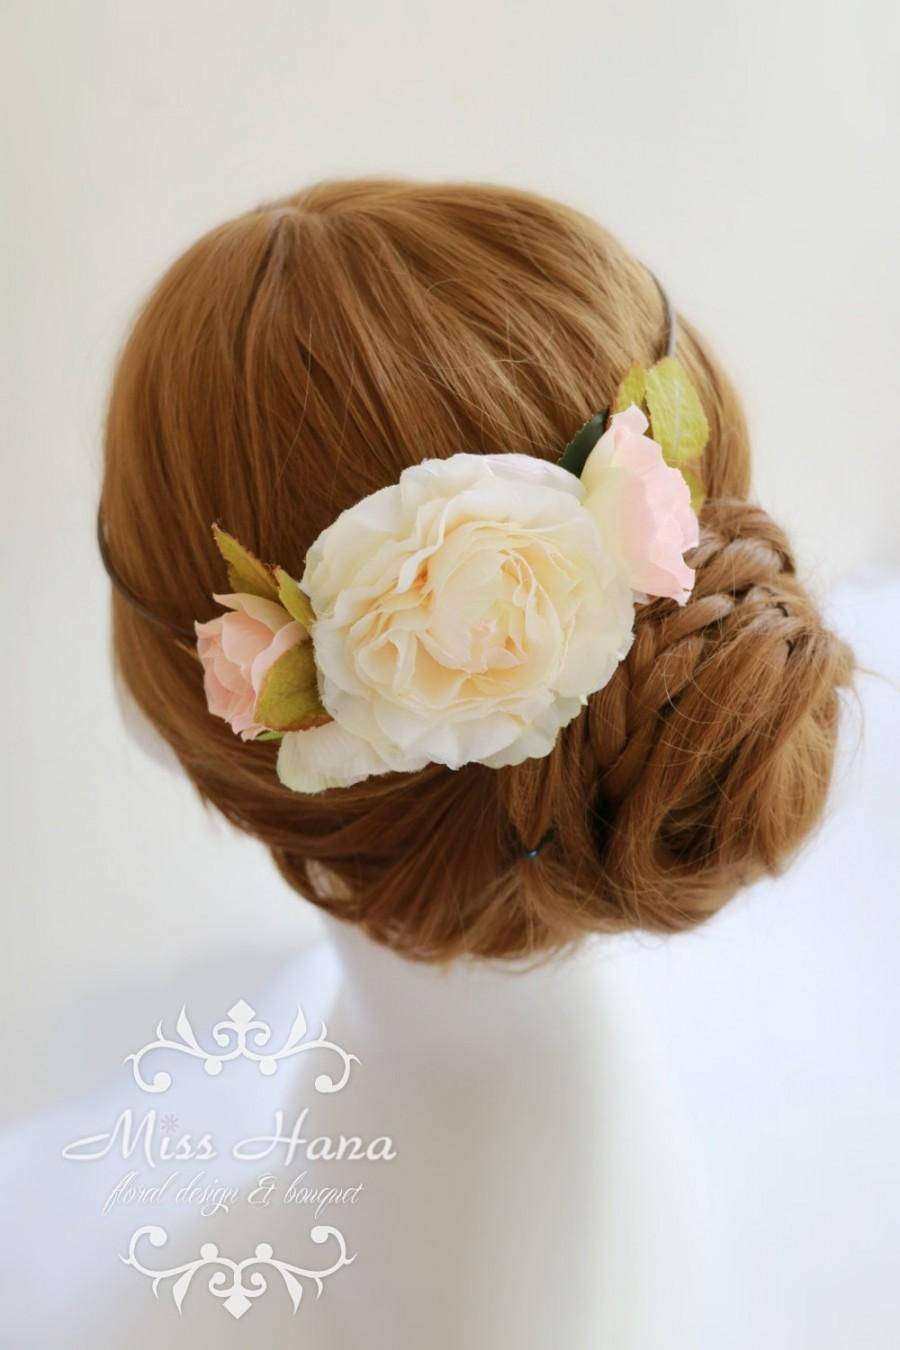 Mariage - Bridal Hair crown, Bridal hair accessory, Bridal hair hairpiece flower, Bride wreath, Bridesmaid Rustic Vintage outdoor wedding woodland